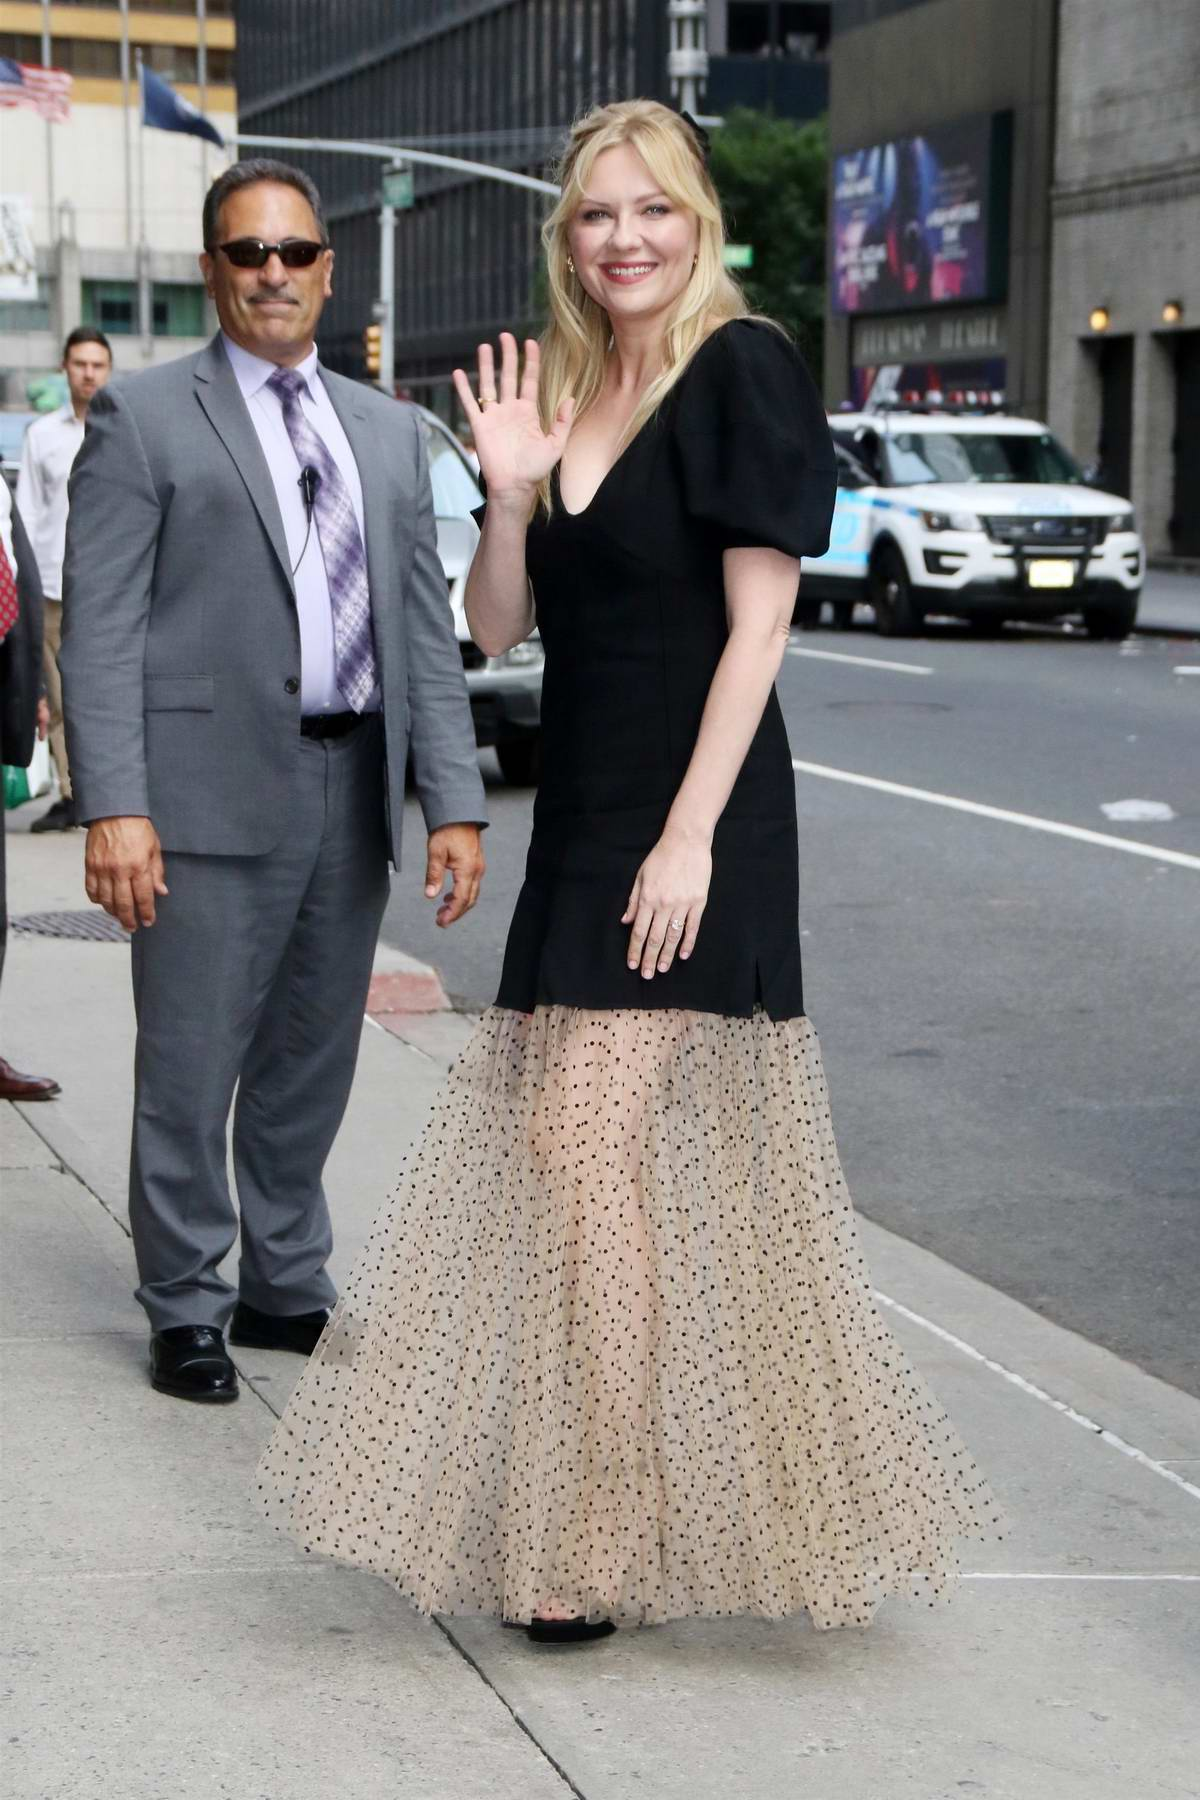 Kirsten Dunst is all smiles as she arrives for an appearance on 'The Late Show with Stephen Colbert' in New York City